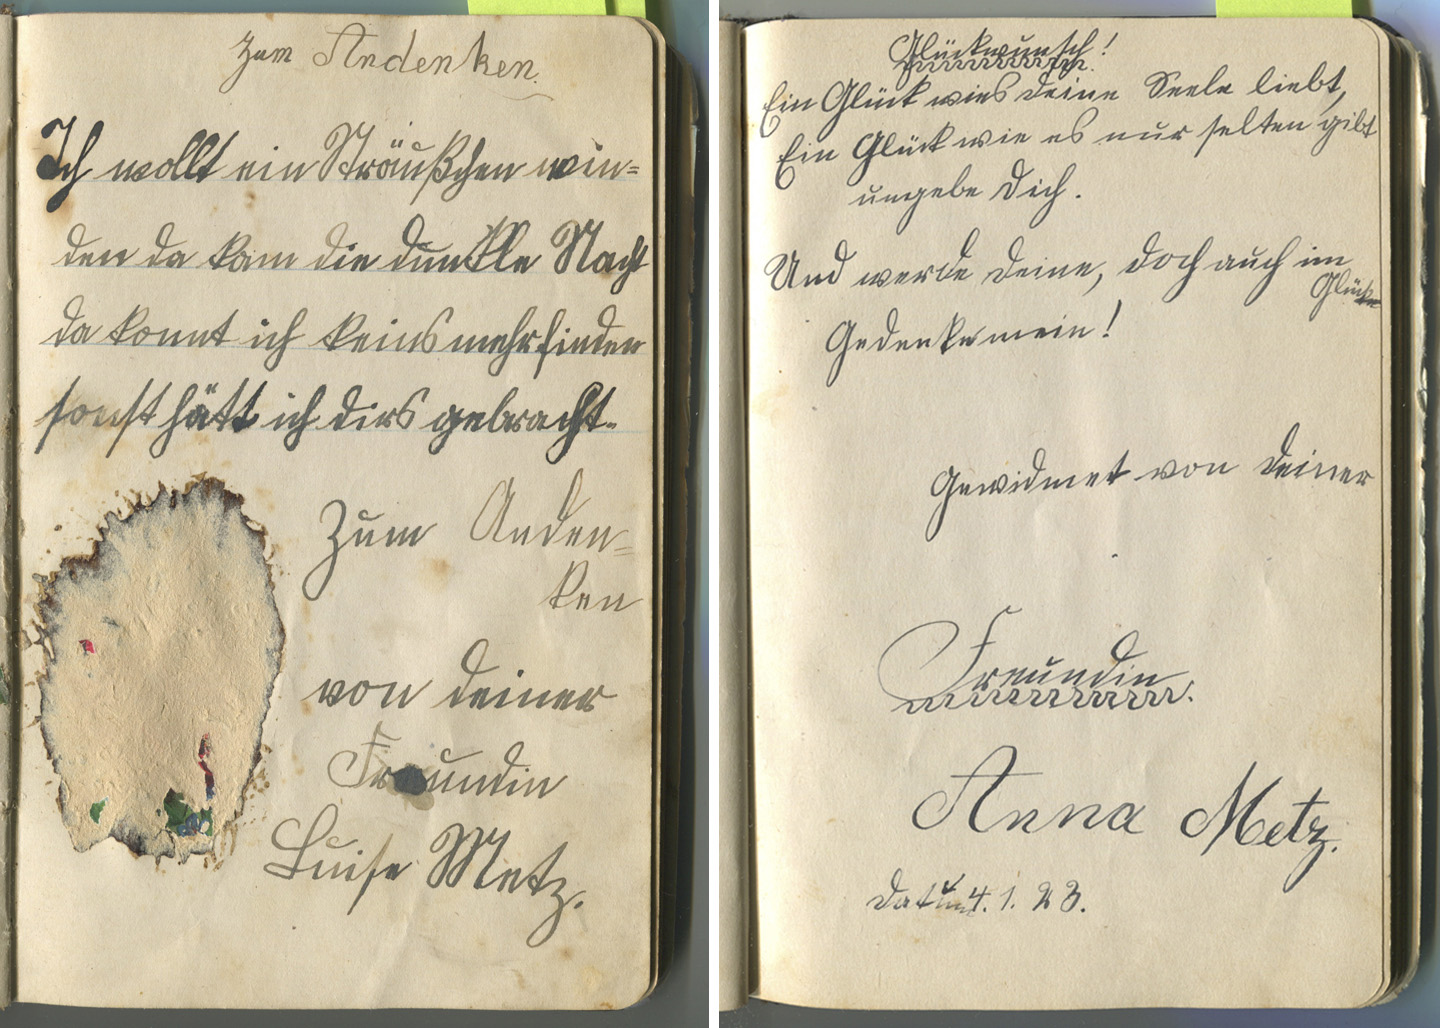 friendship book in Sütterlin. Frieda.